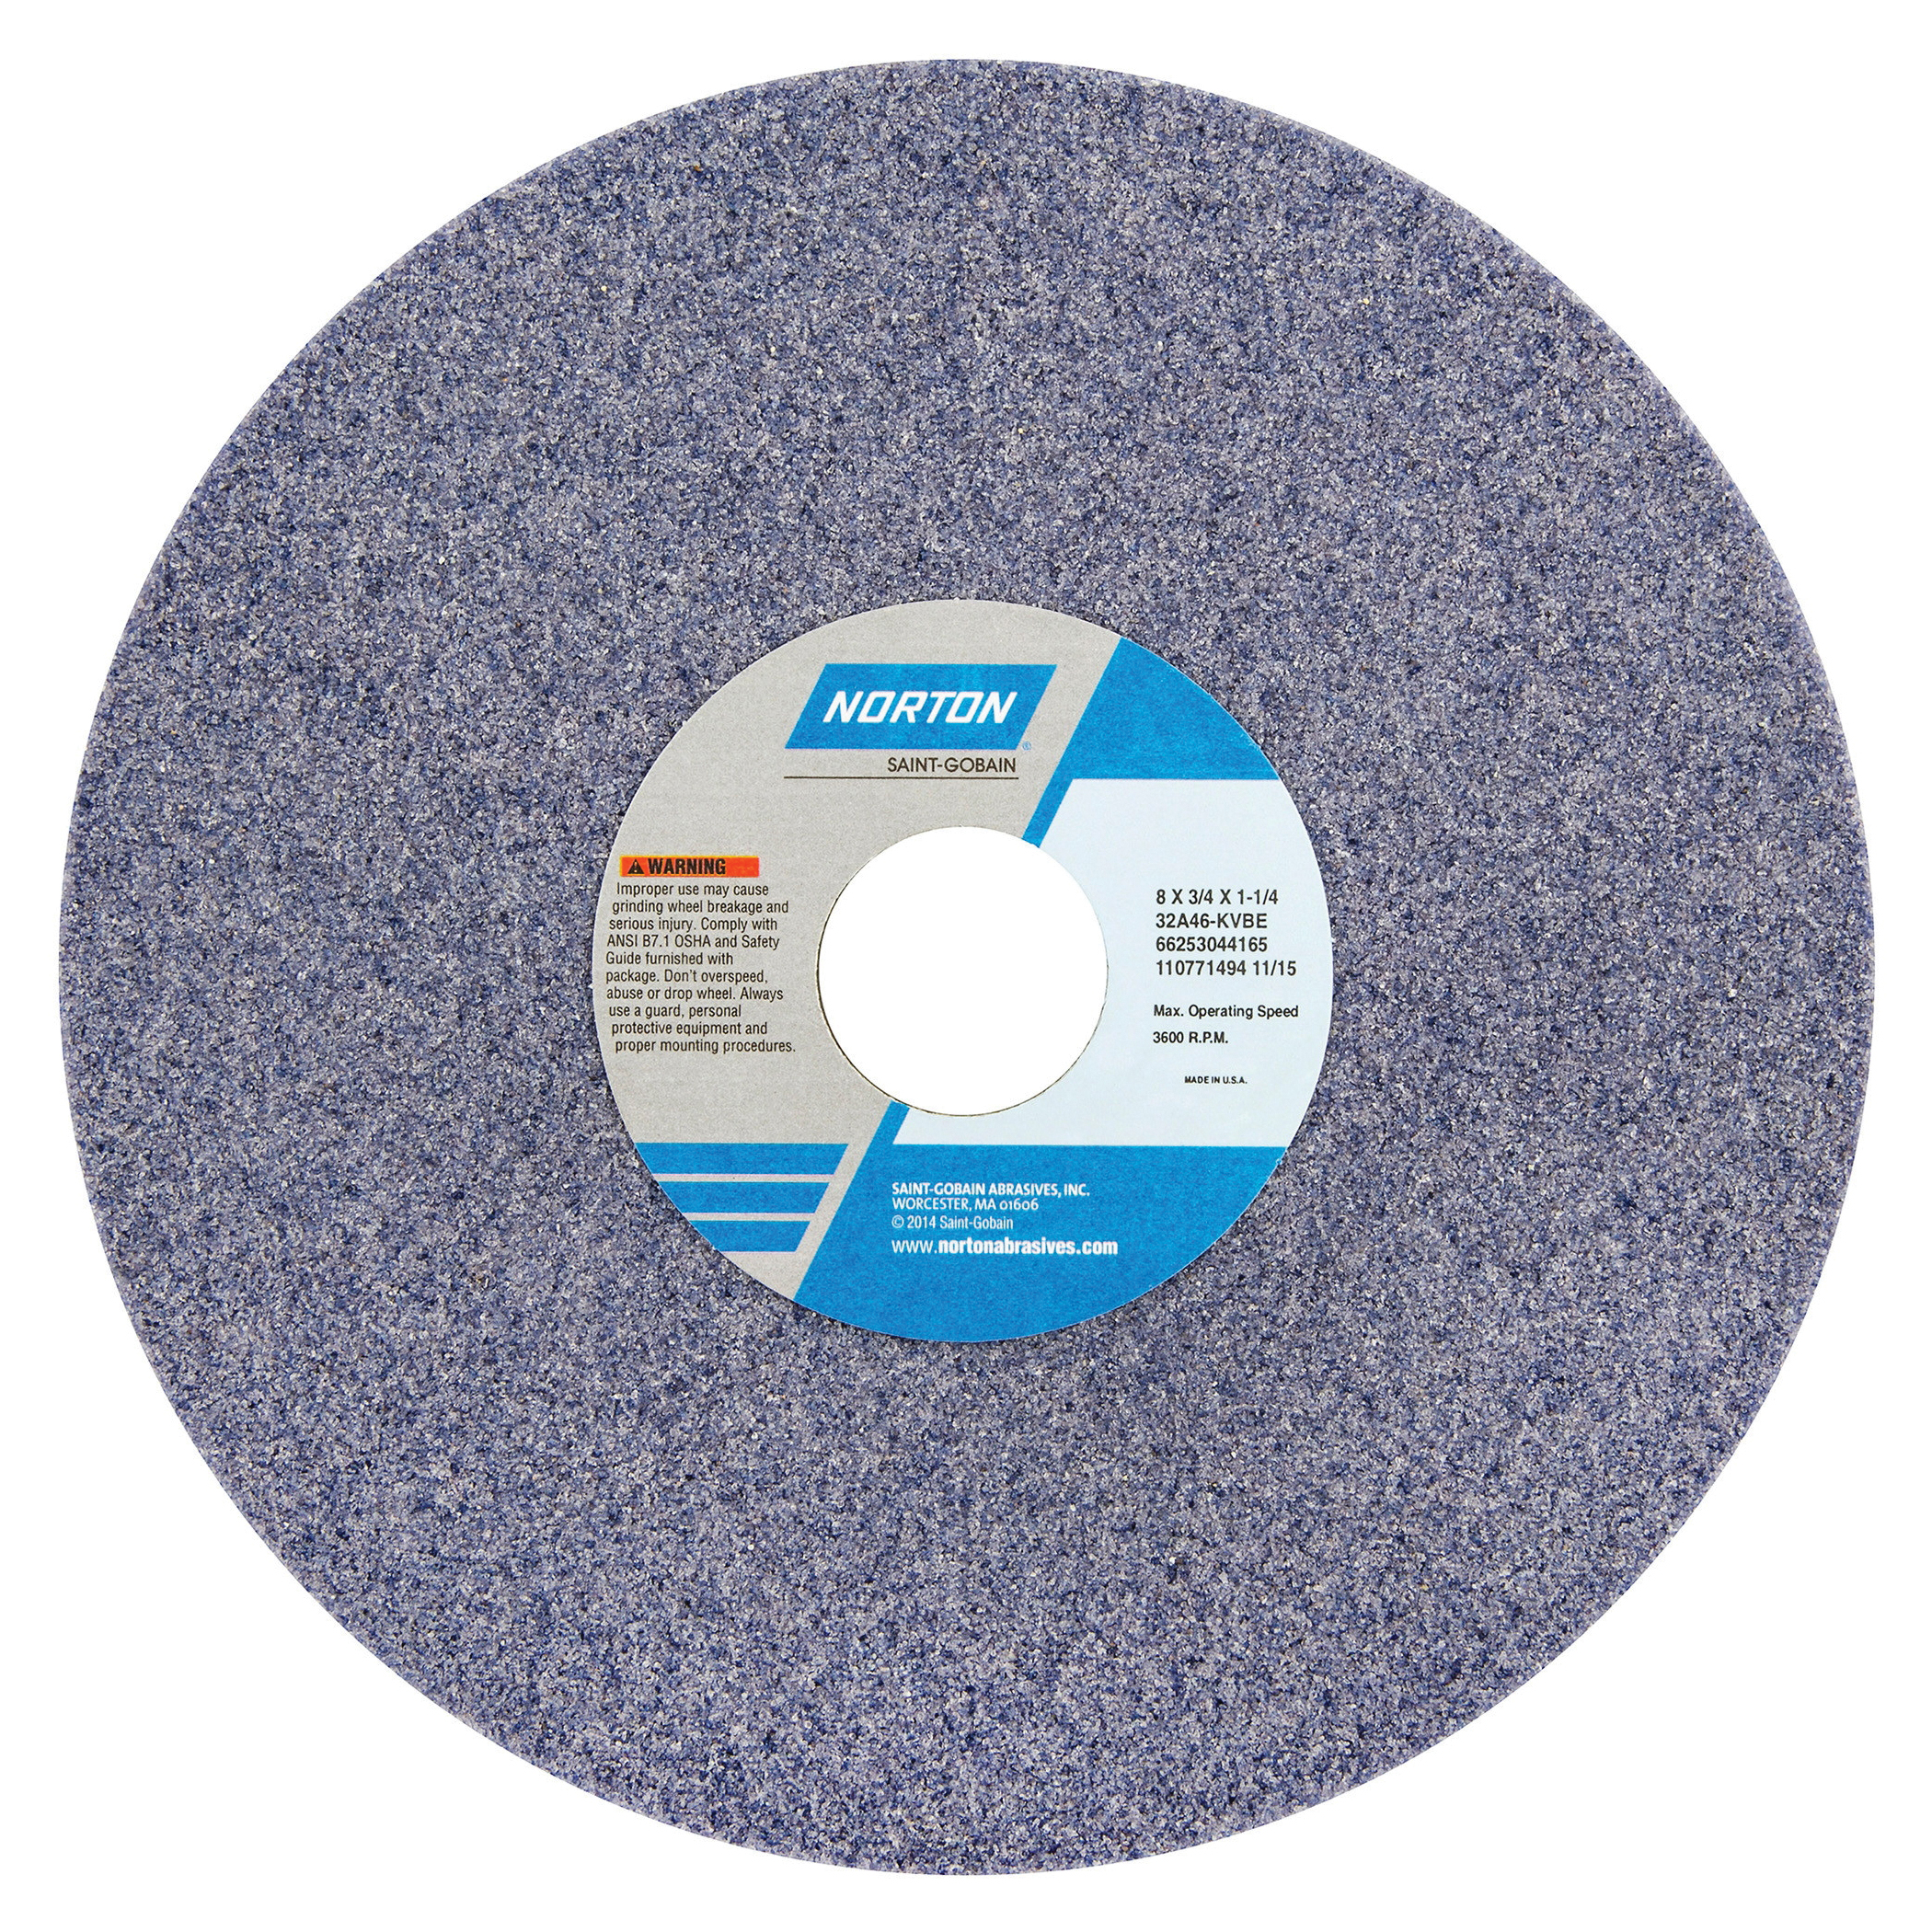 Norton® 66253044169 32A Straight Toolroom Wheel, 8 in Dia x 3/4 in THK, 1-1/4 in Center Hole, 60 Grit, Aluminum Oxide Abrasive